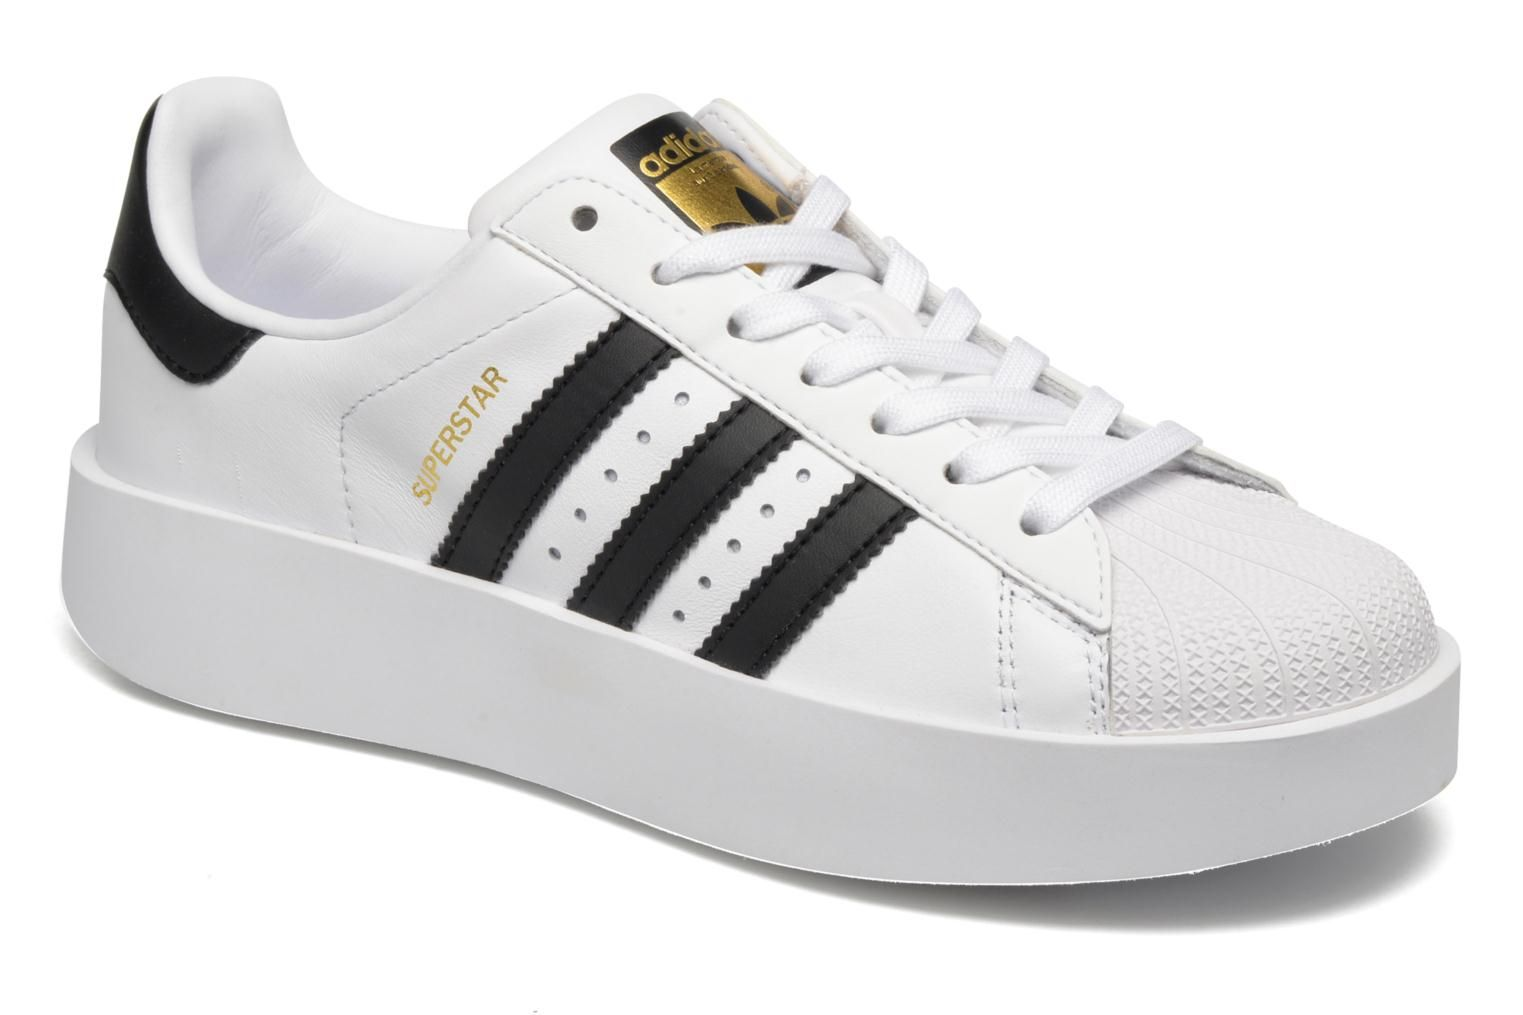 https://www.sneakerwijzer.nl/adidas-superstar-dames ...